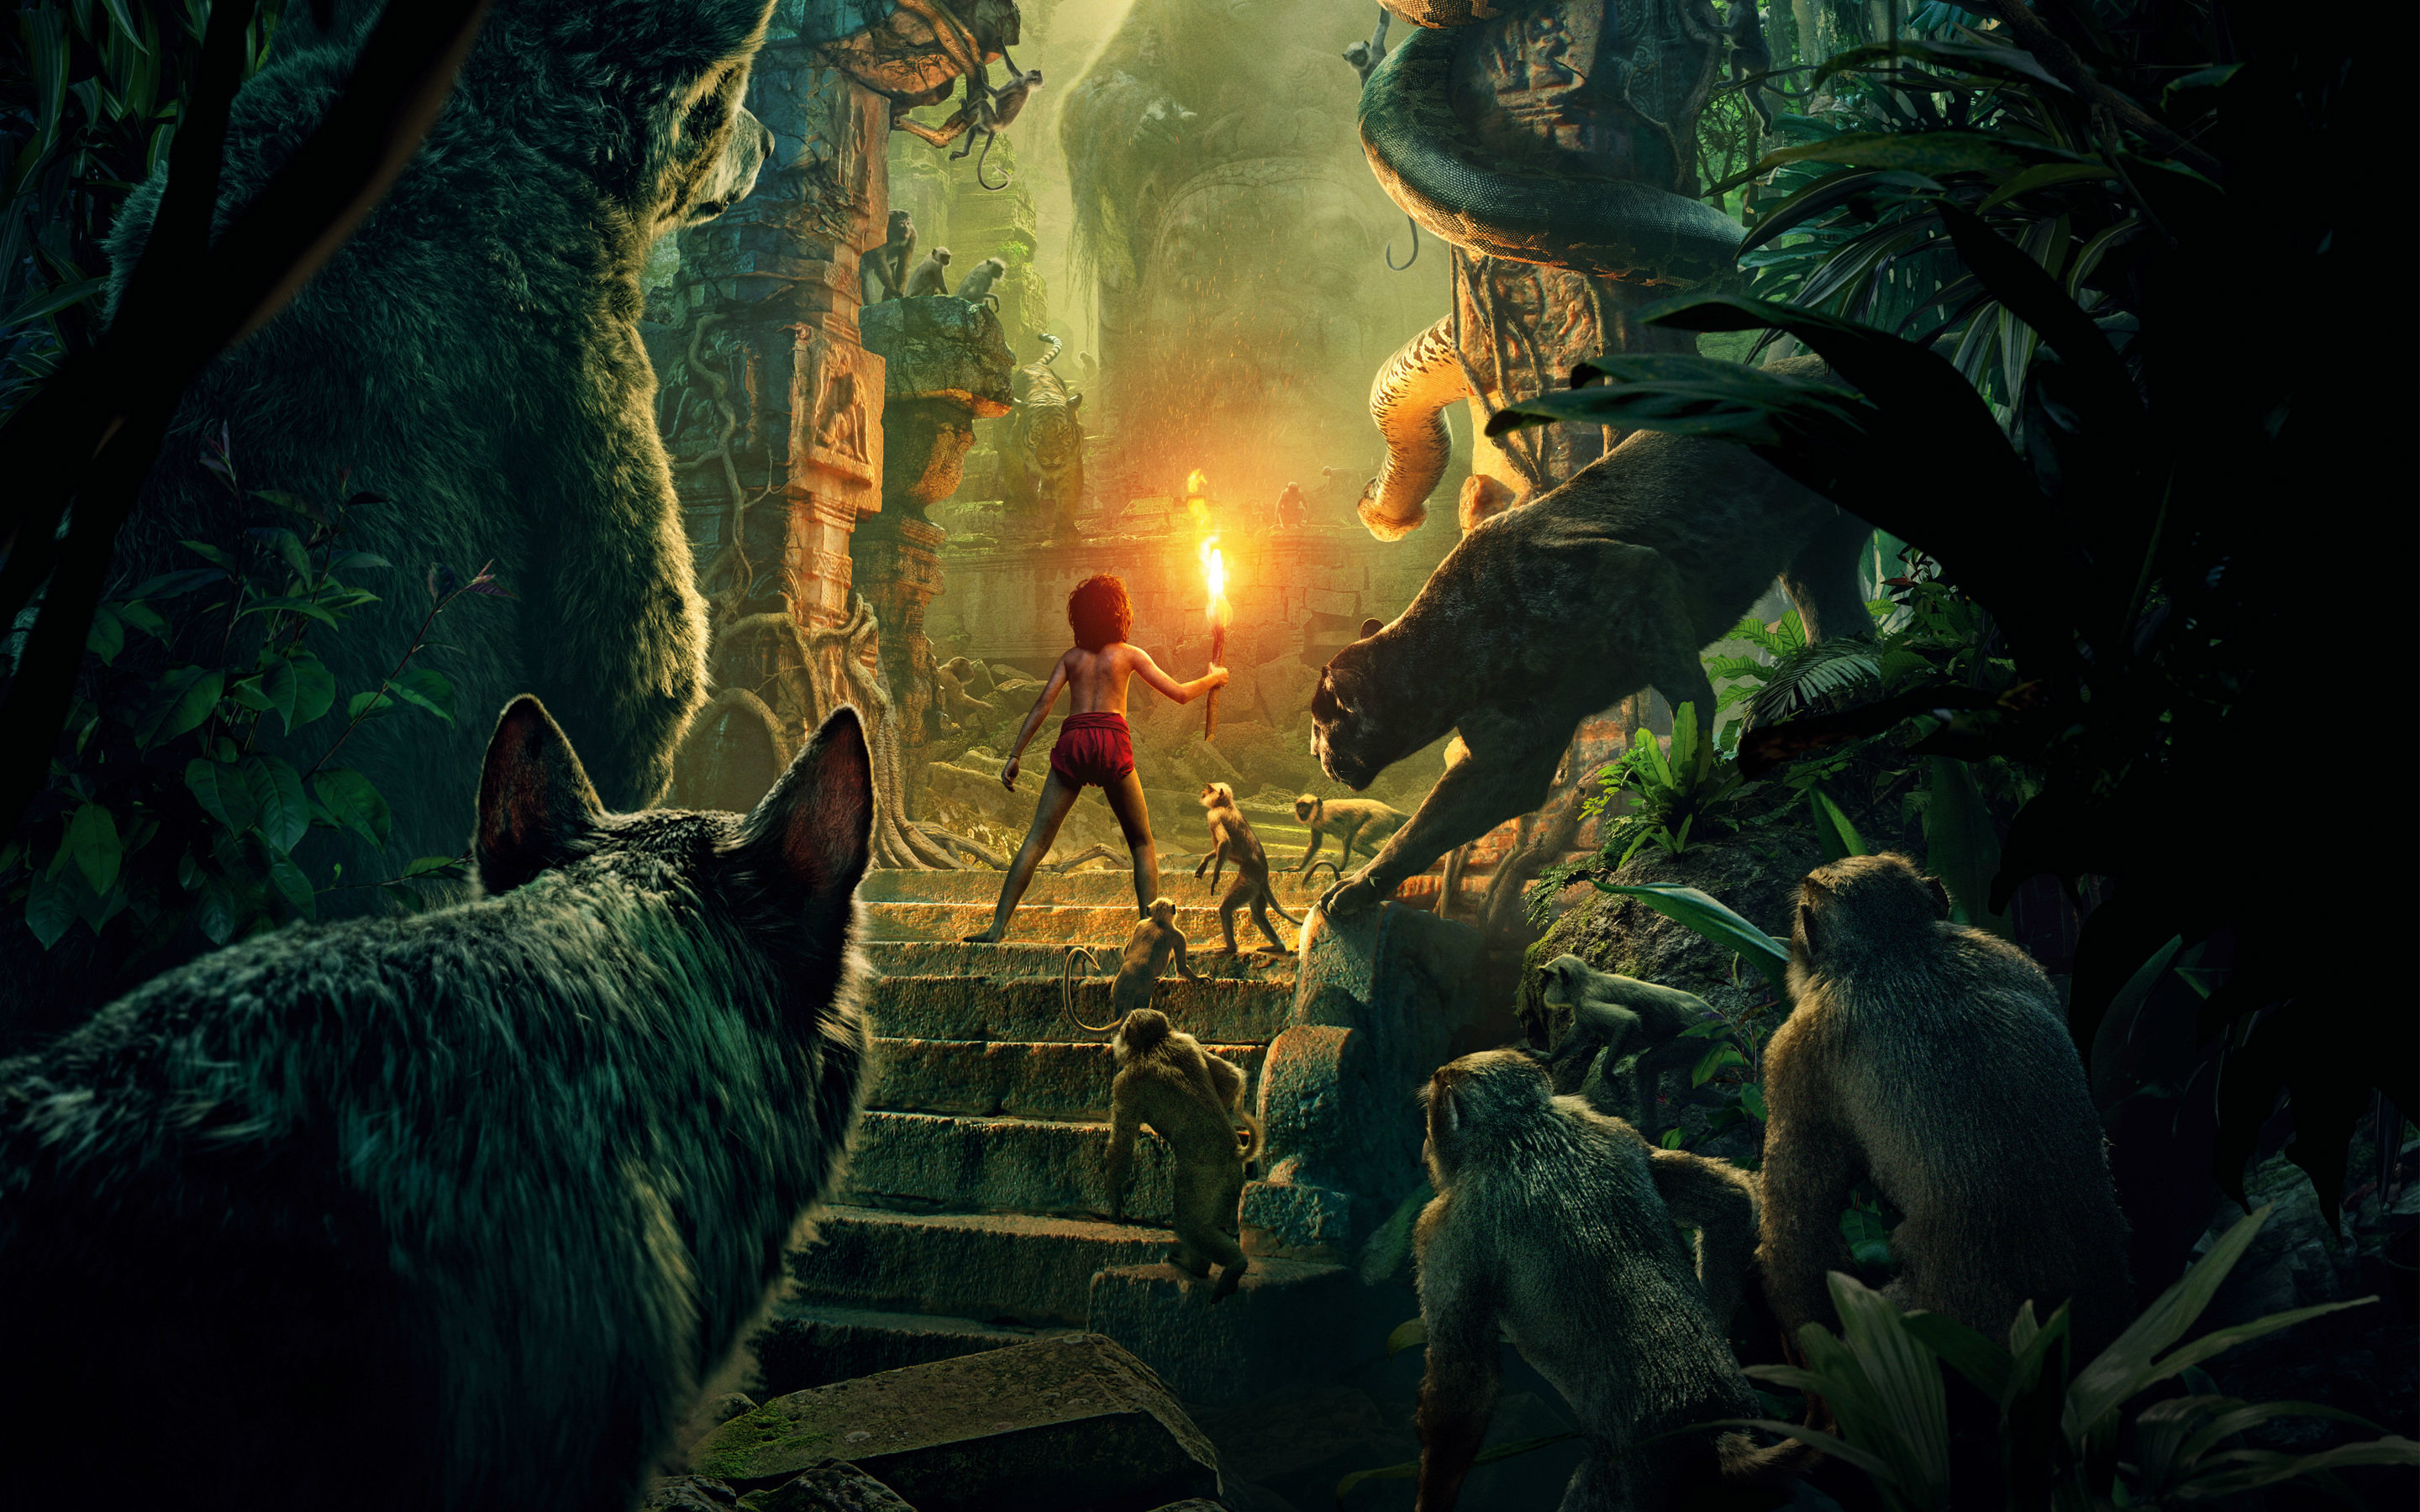 The Jungle Book Movie becomes Highest Grosser in 2016, collected Rs. 132.96 cr, till now.